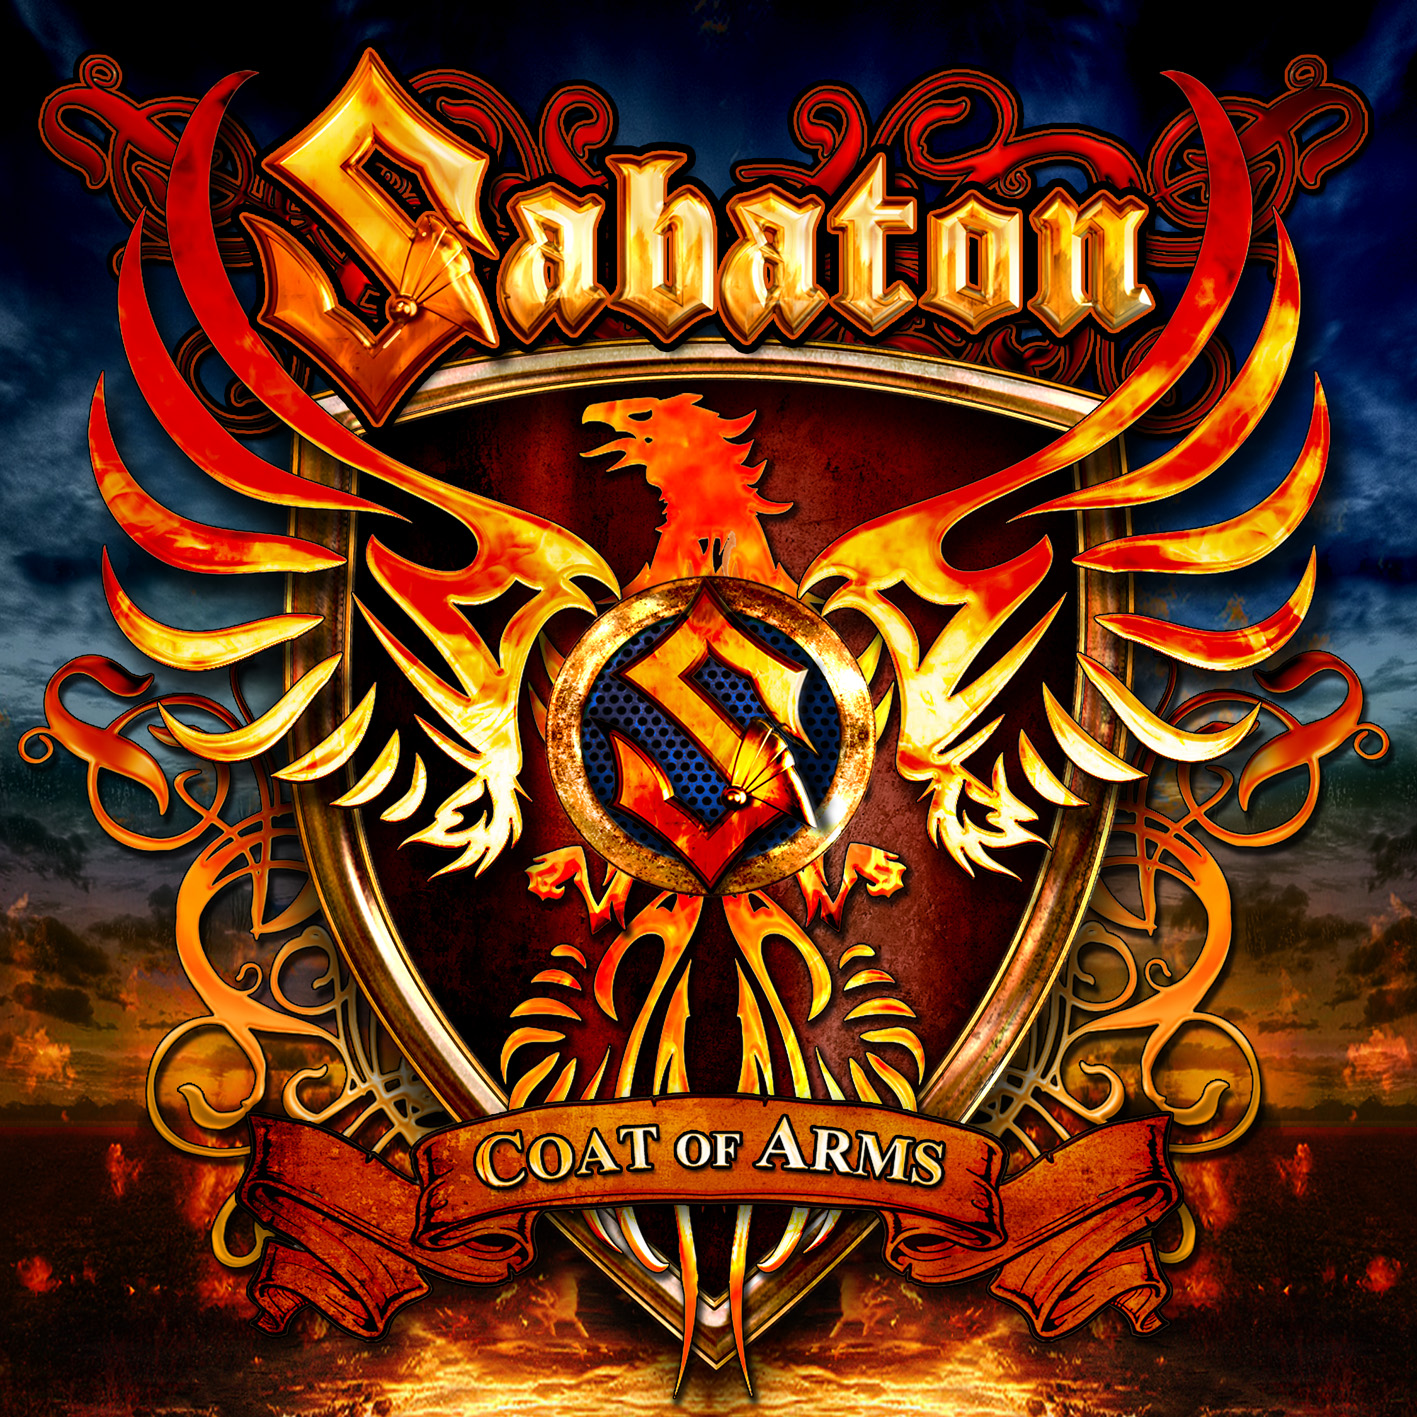 Sabaton – Coat of Arms Review